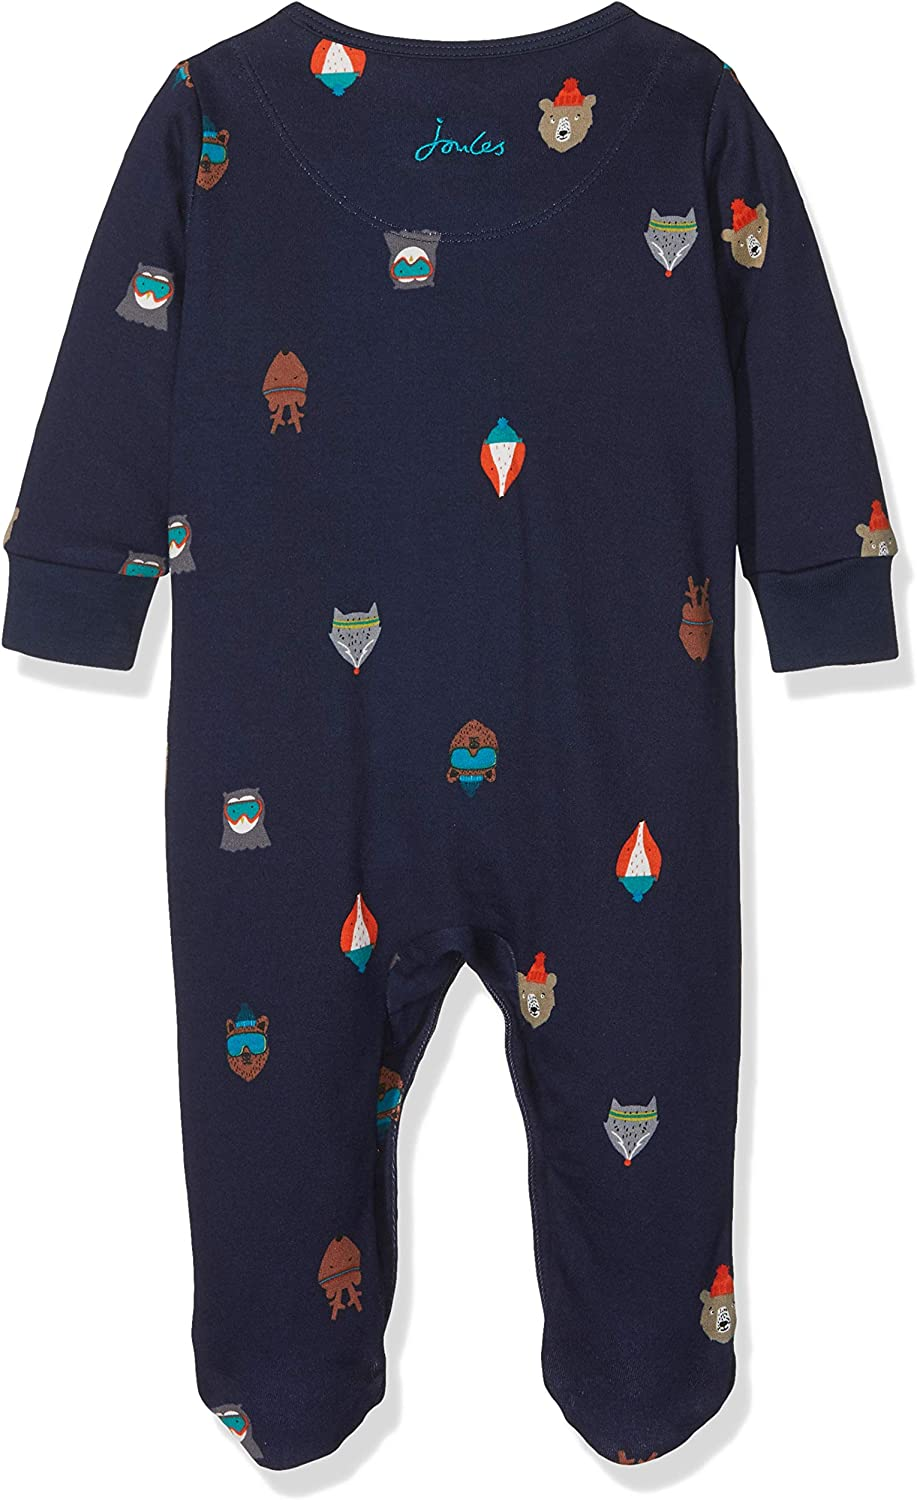 Joules Baby Boys Ziggy Footies